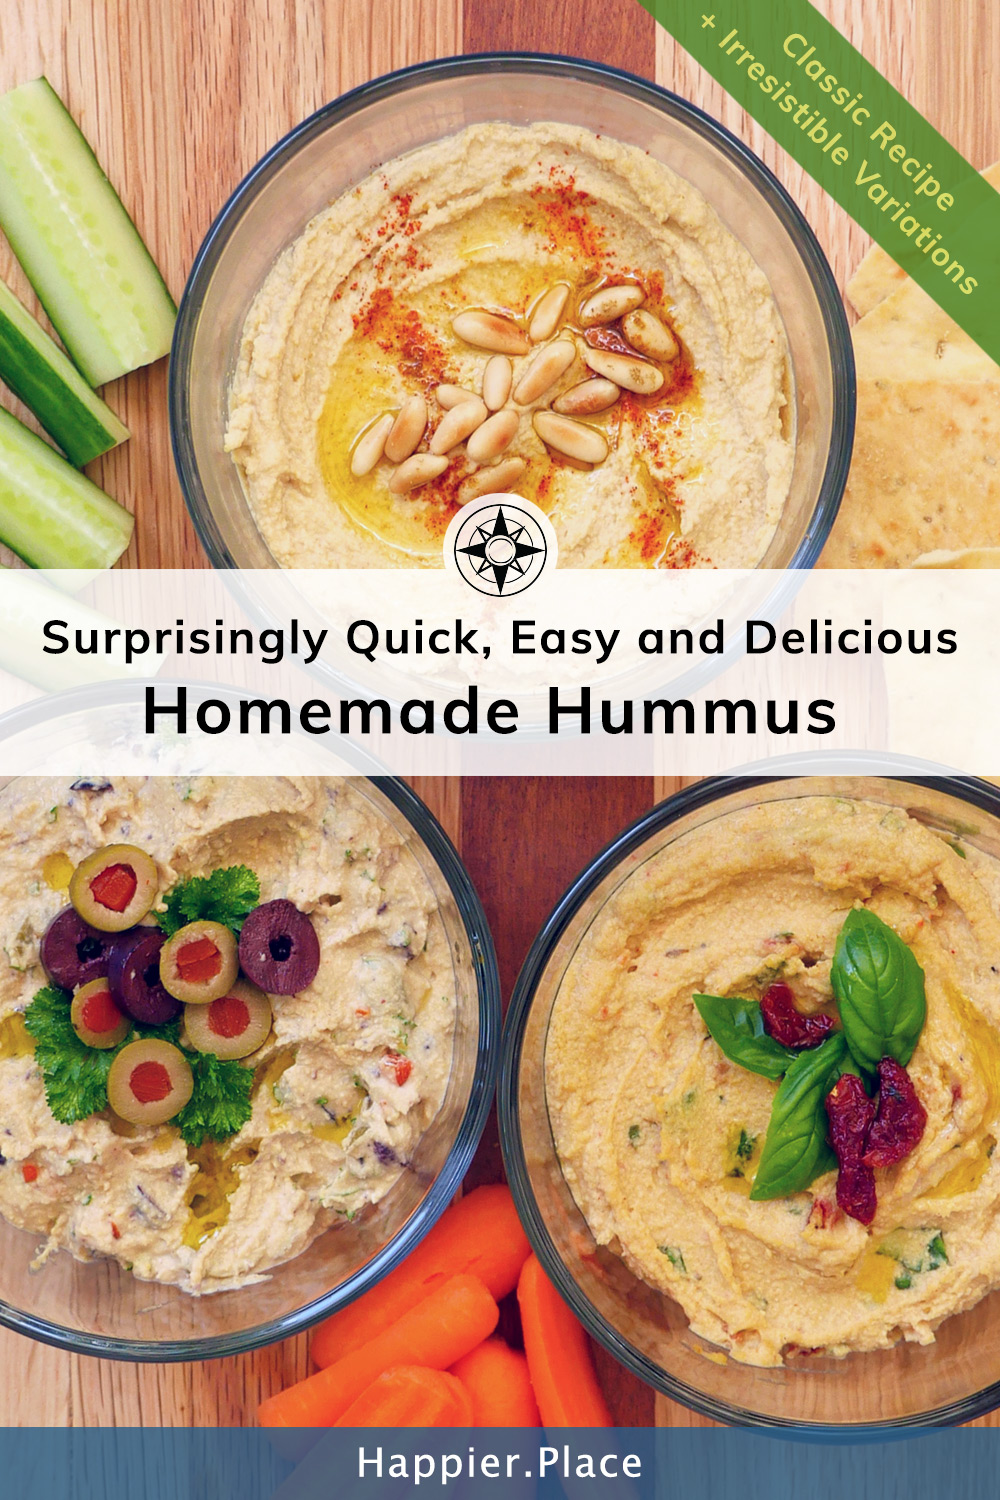 Surprisingly Quick, Easy and Delicious: Homemade Hummus (Classic + Variations)